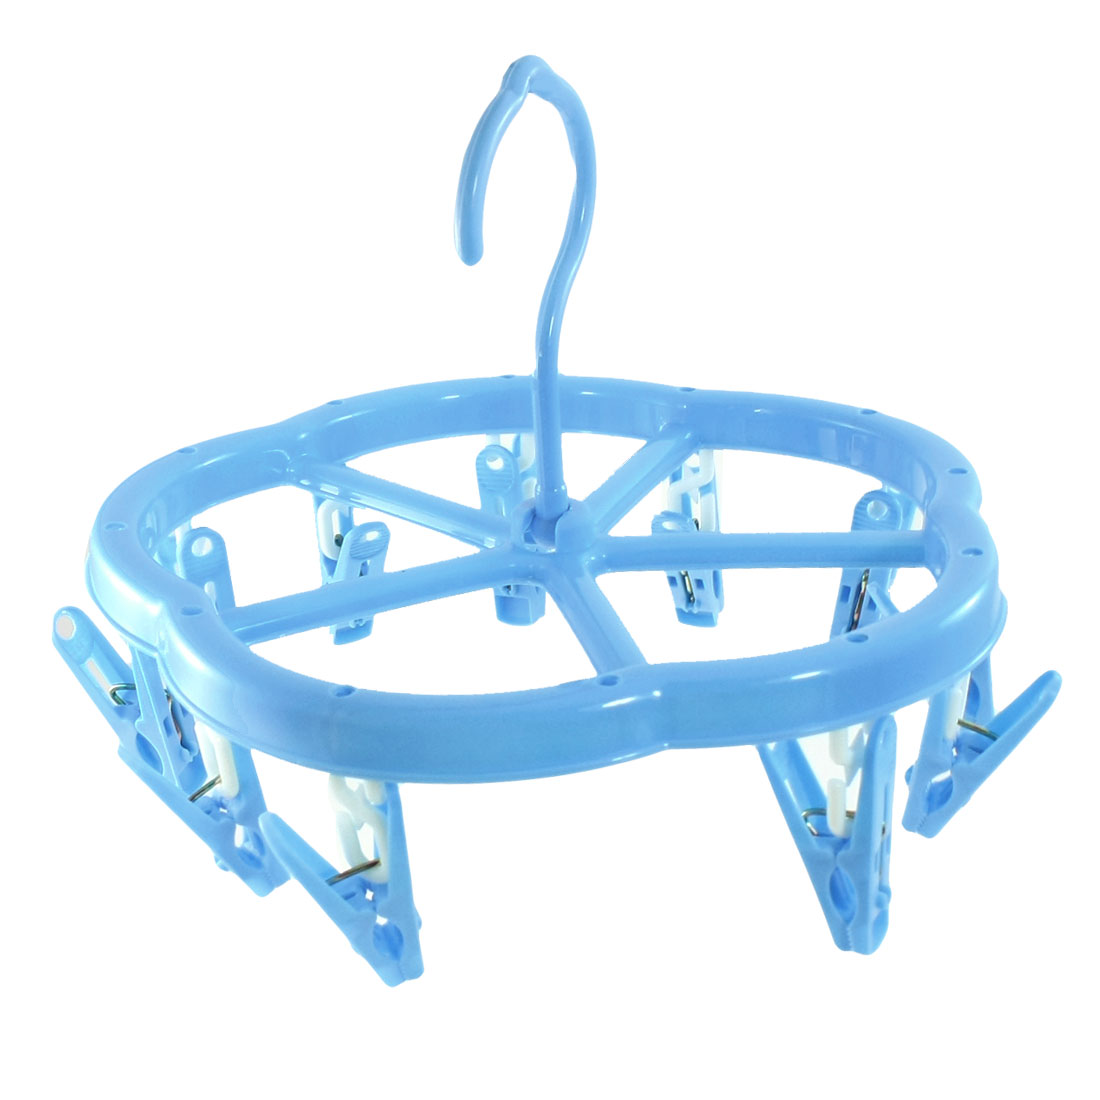 Plastic 12 Pegs Underwear Bra Shoelace Socks Clothes Hanger Clips Blue